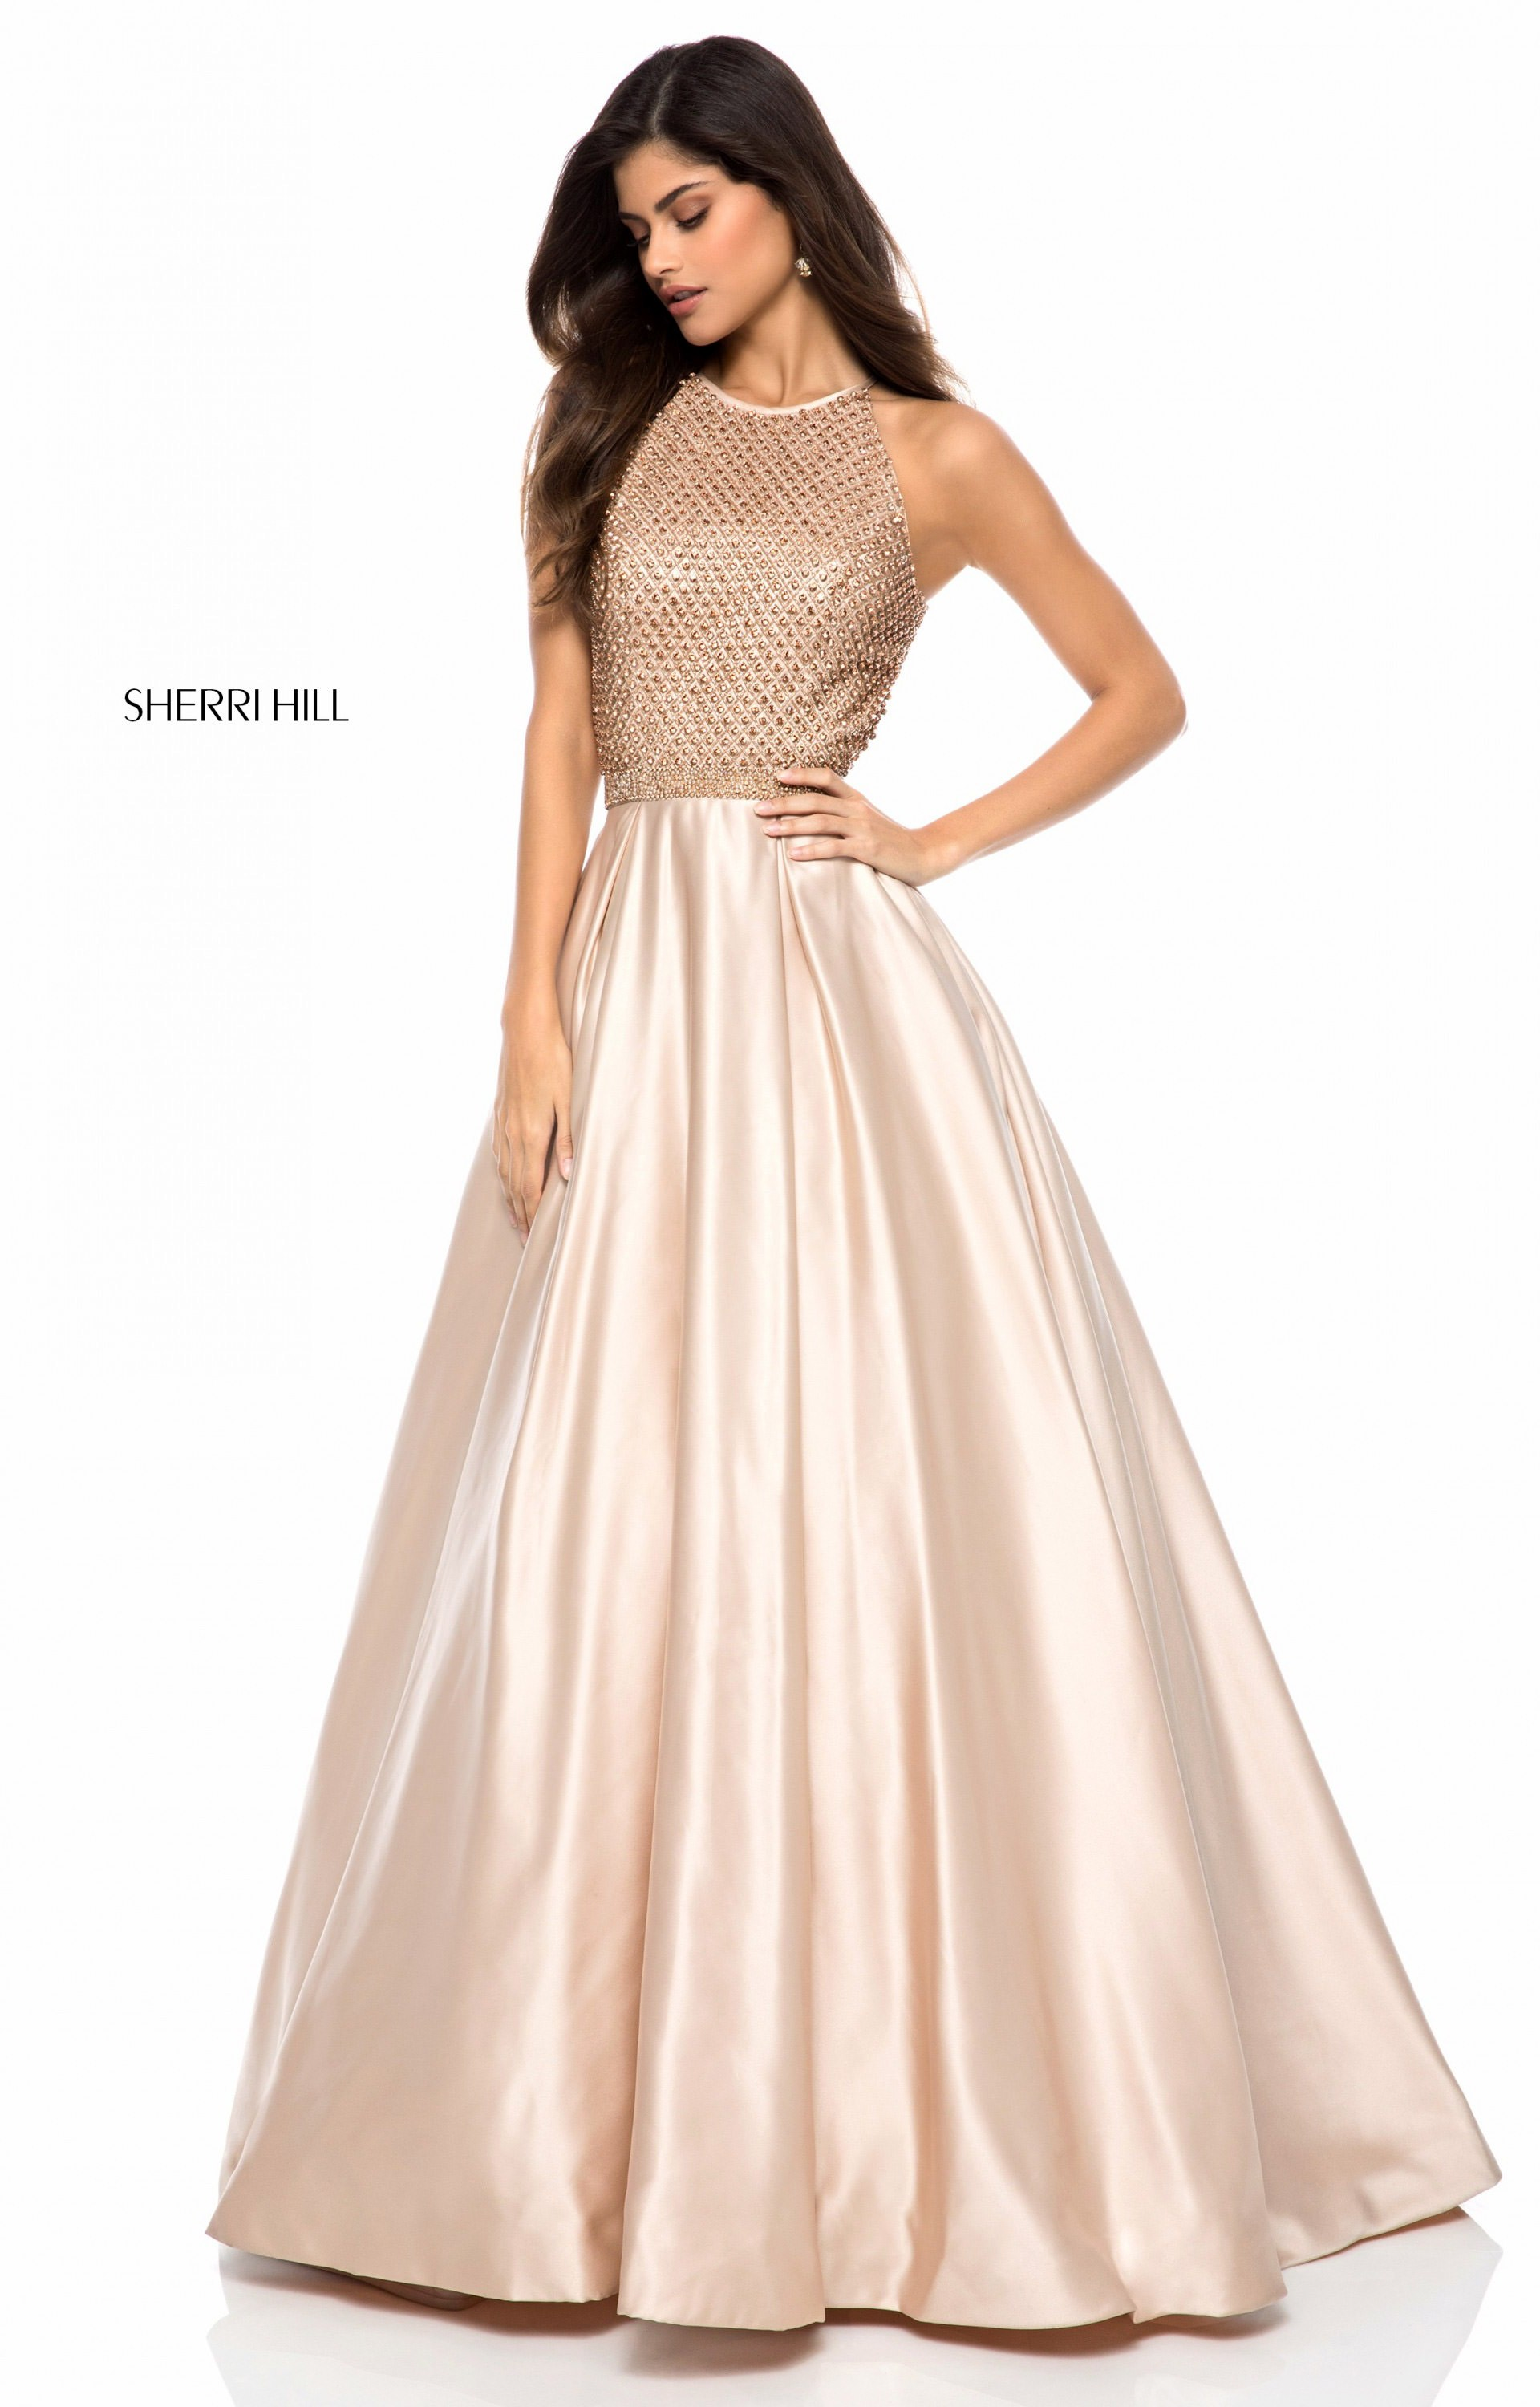 Sherri Hill 52019 - Long Satin Ball Gown Prom Dress